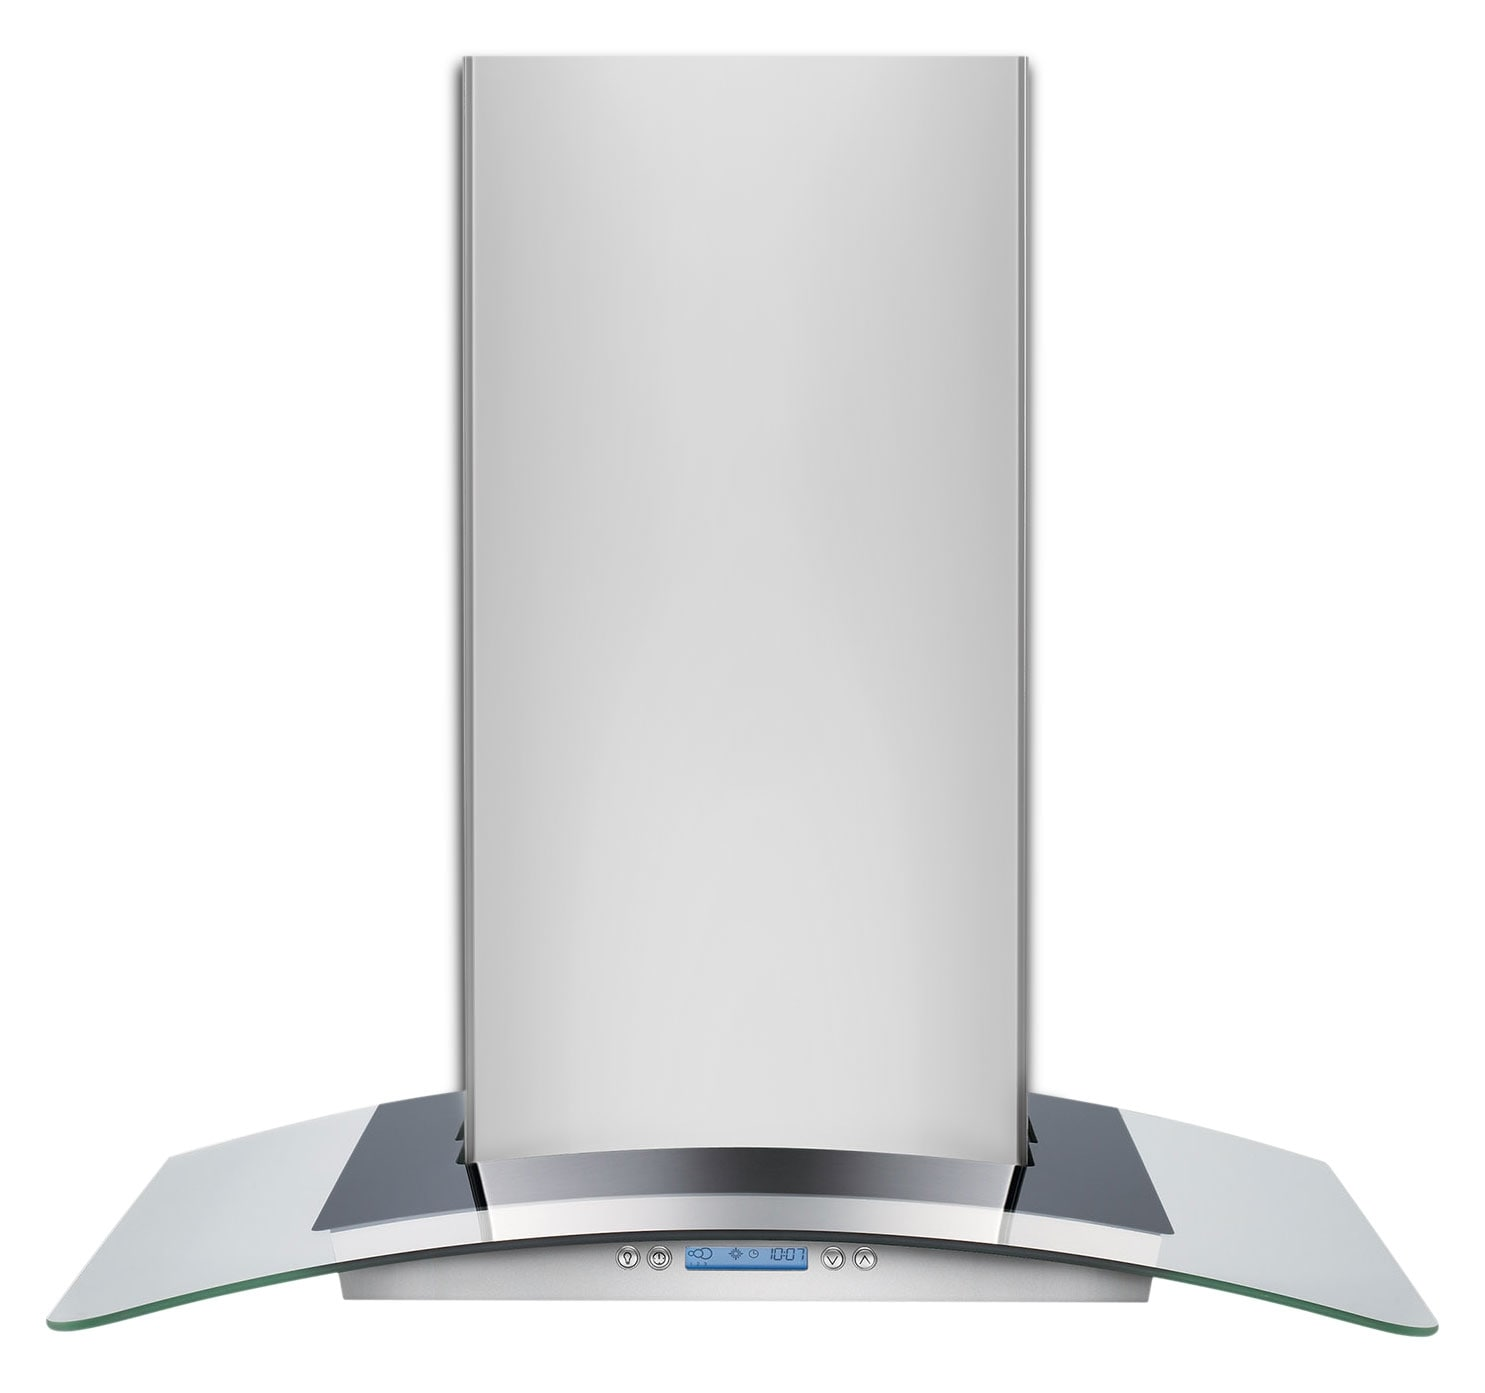 Electrolux Glass and Stainless Steel Range Hood - RH30WC60GS